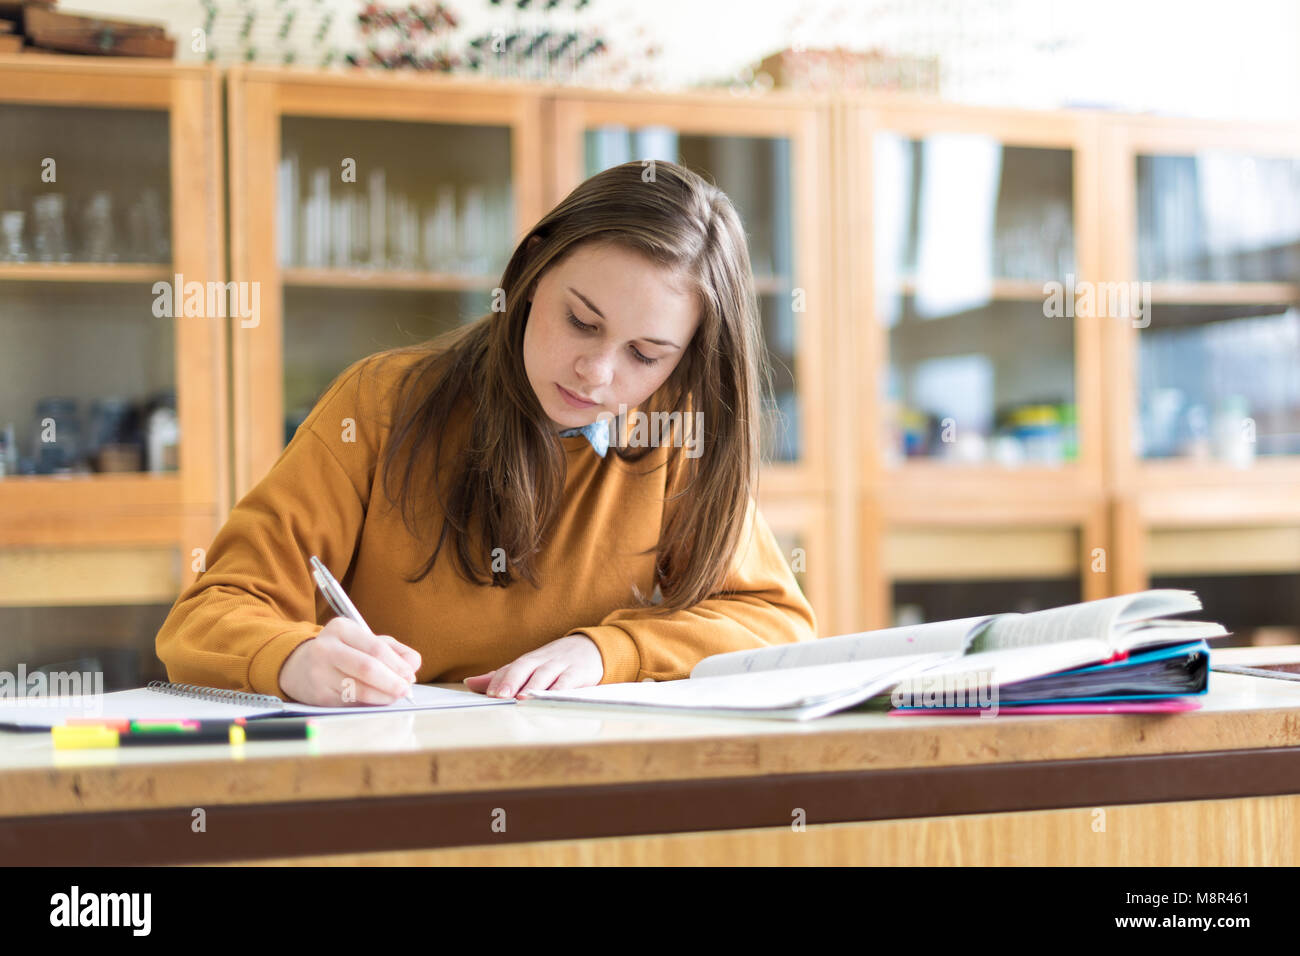 Young female college student in chemistry class, writing notes. Focused student in classroom. Authentic Education Stock Photo